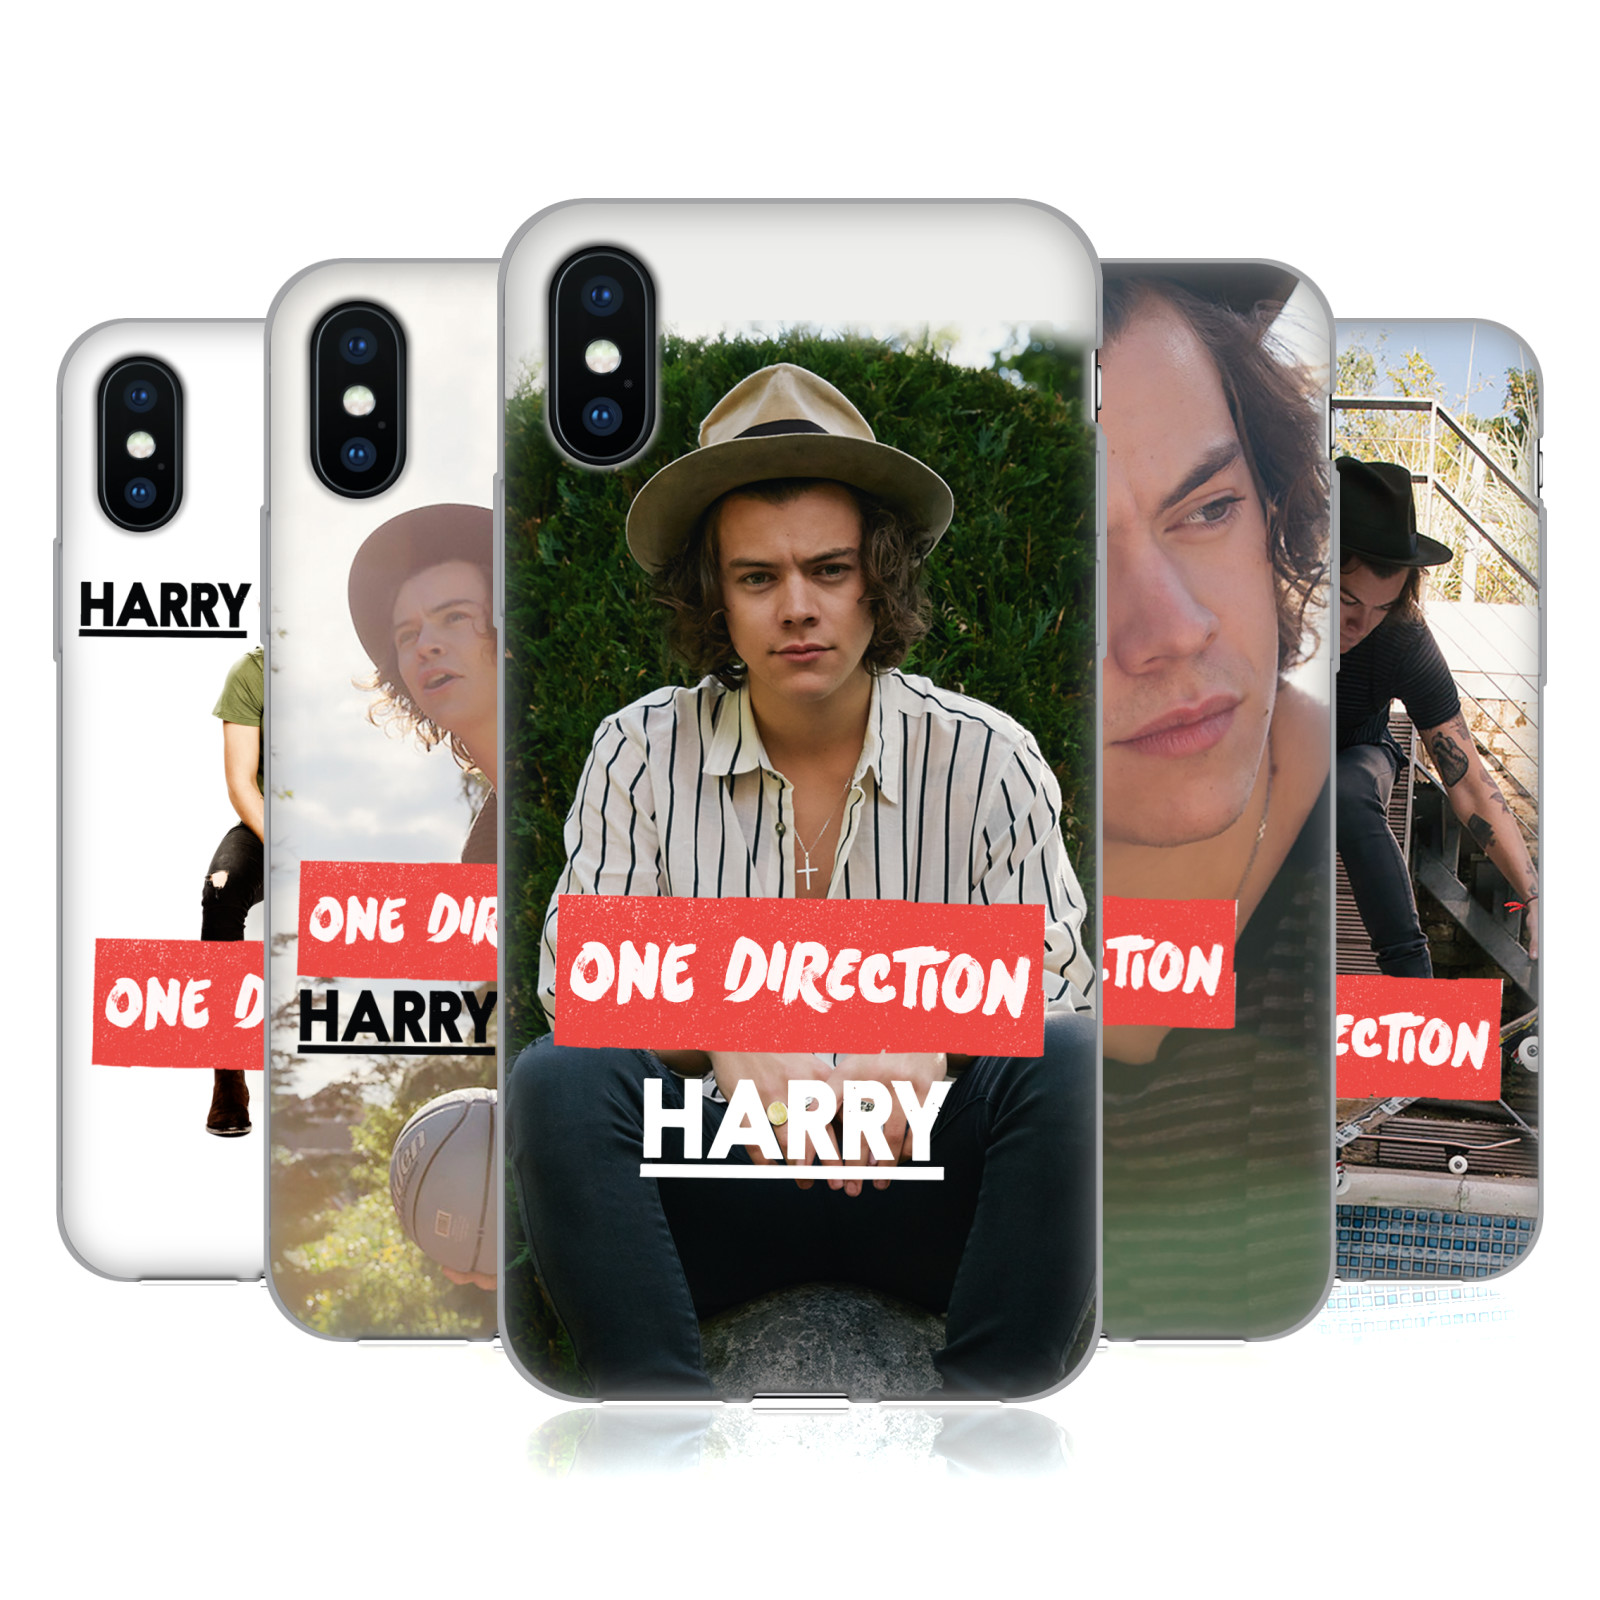 One Direction Harry Styles Photo